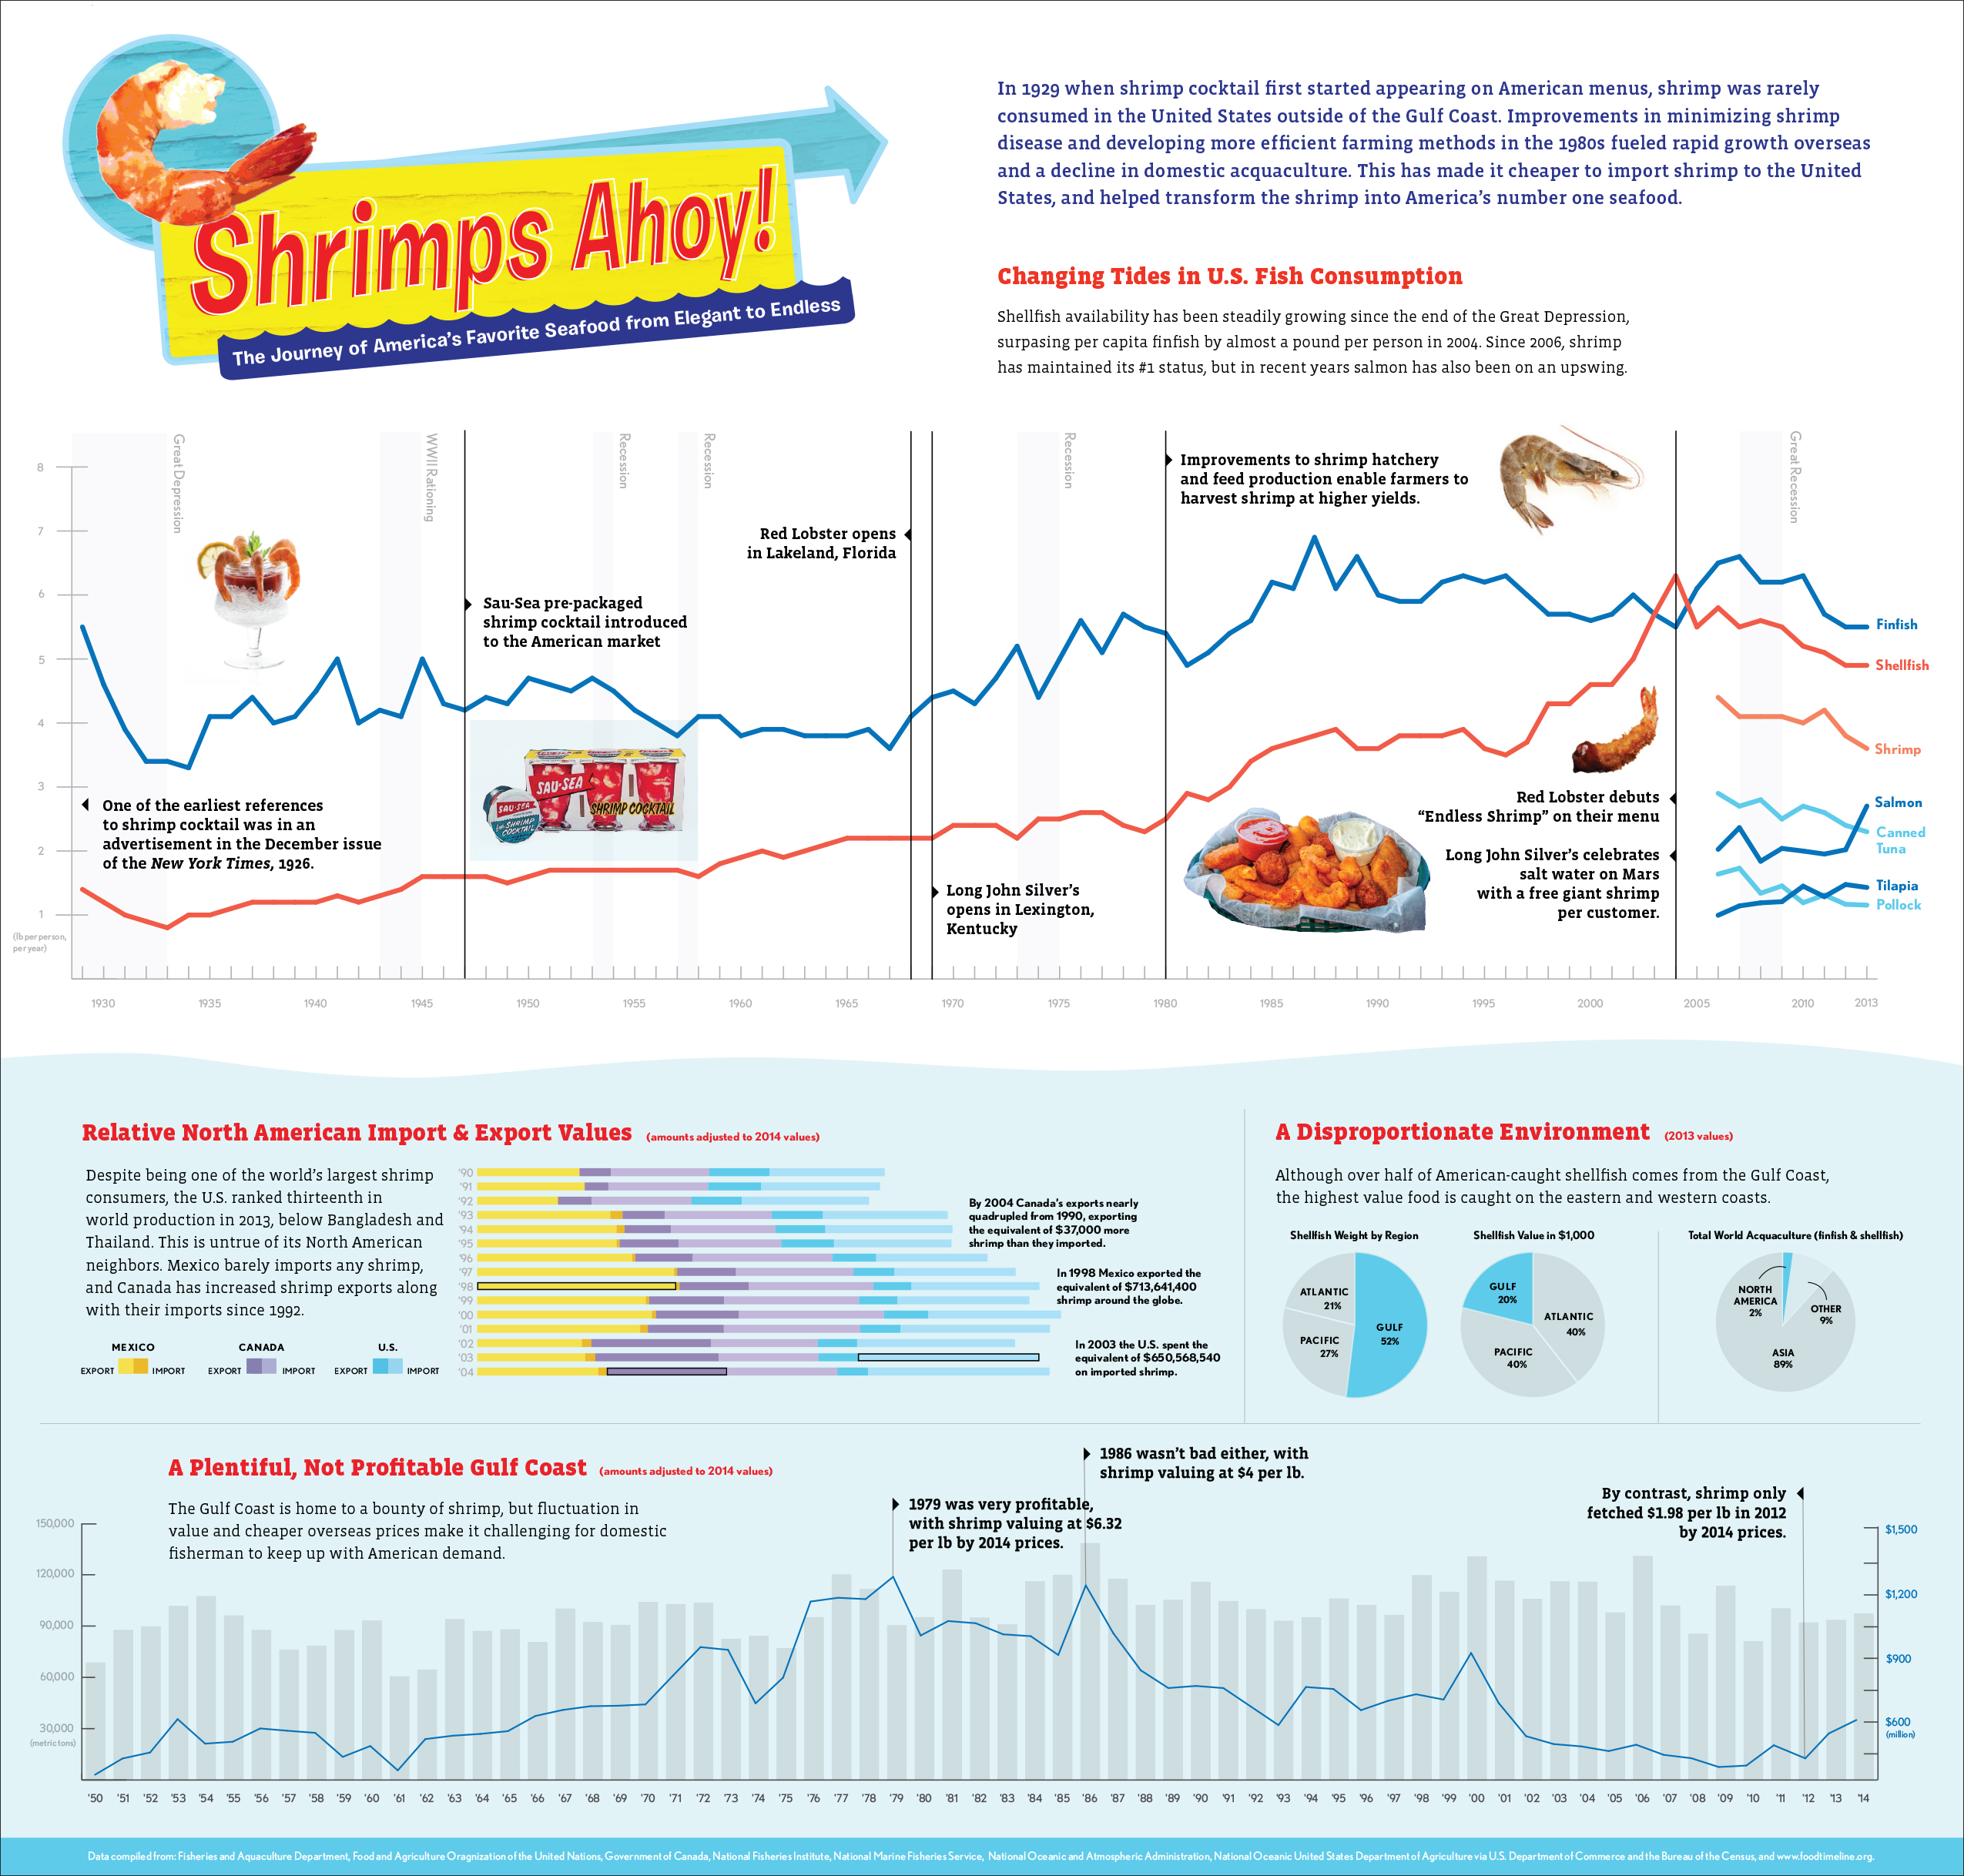 Infographic showing various historical data and text related to shrimp consumption in America